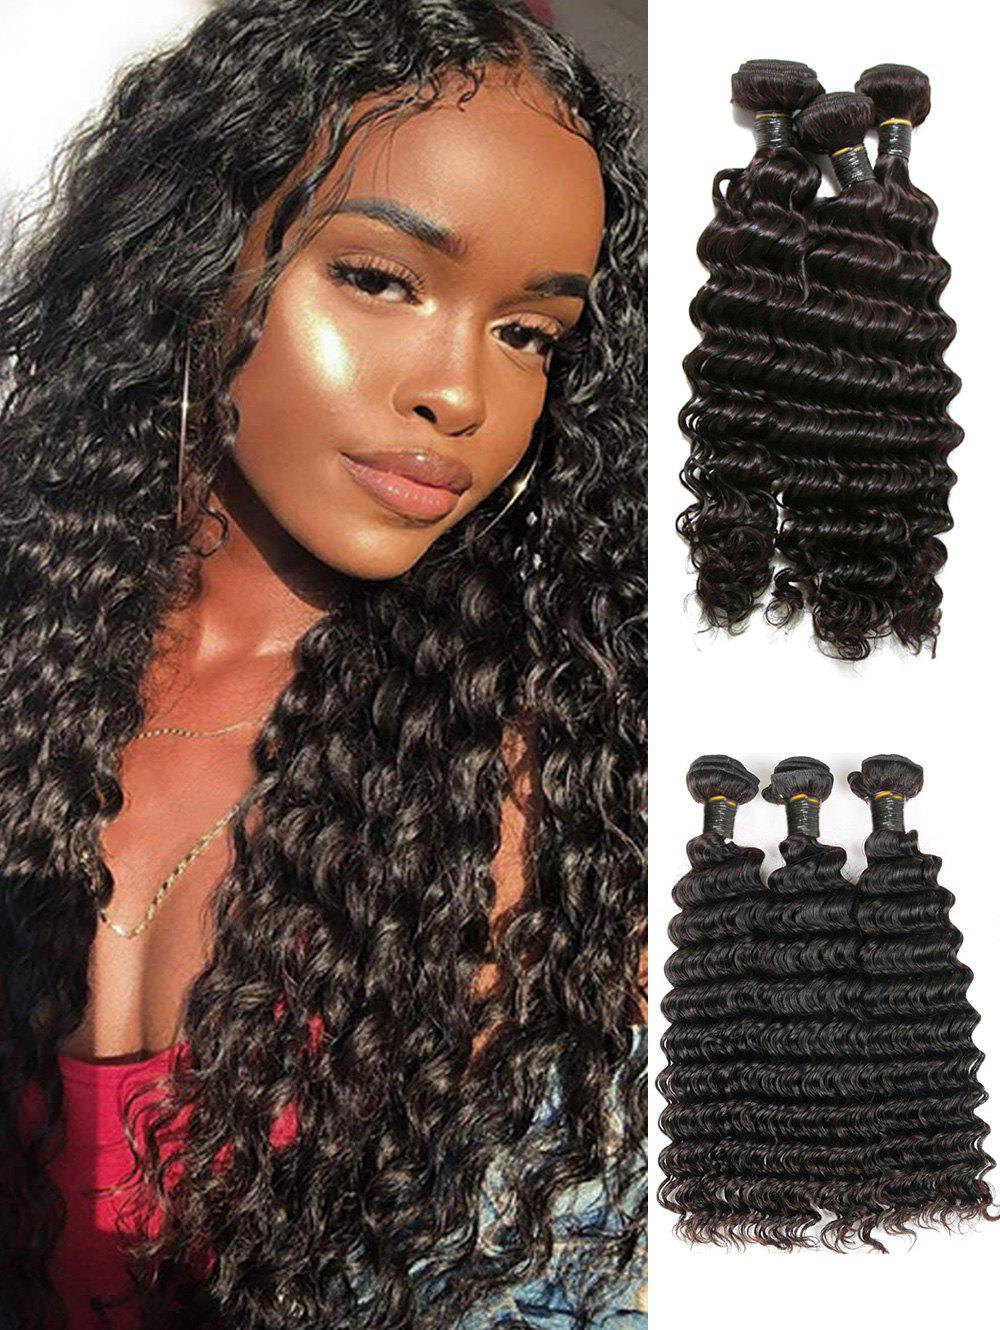 Cheap 3Pcs Brazilian Natural Deep Wave Virgin Human Hair Extensions